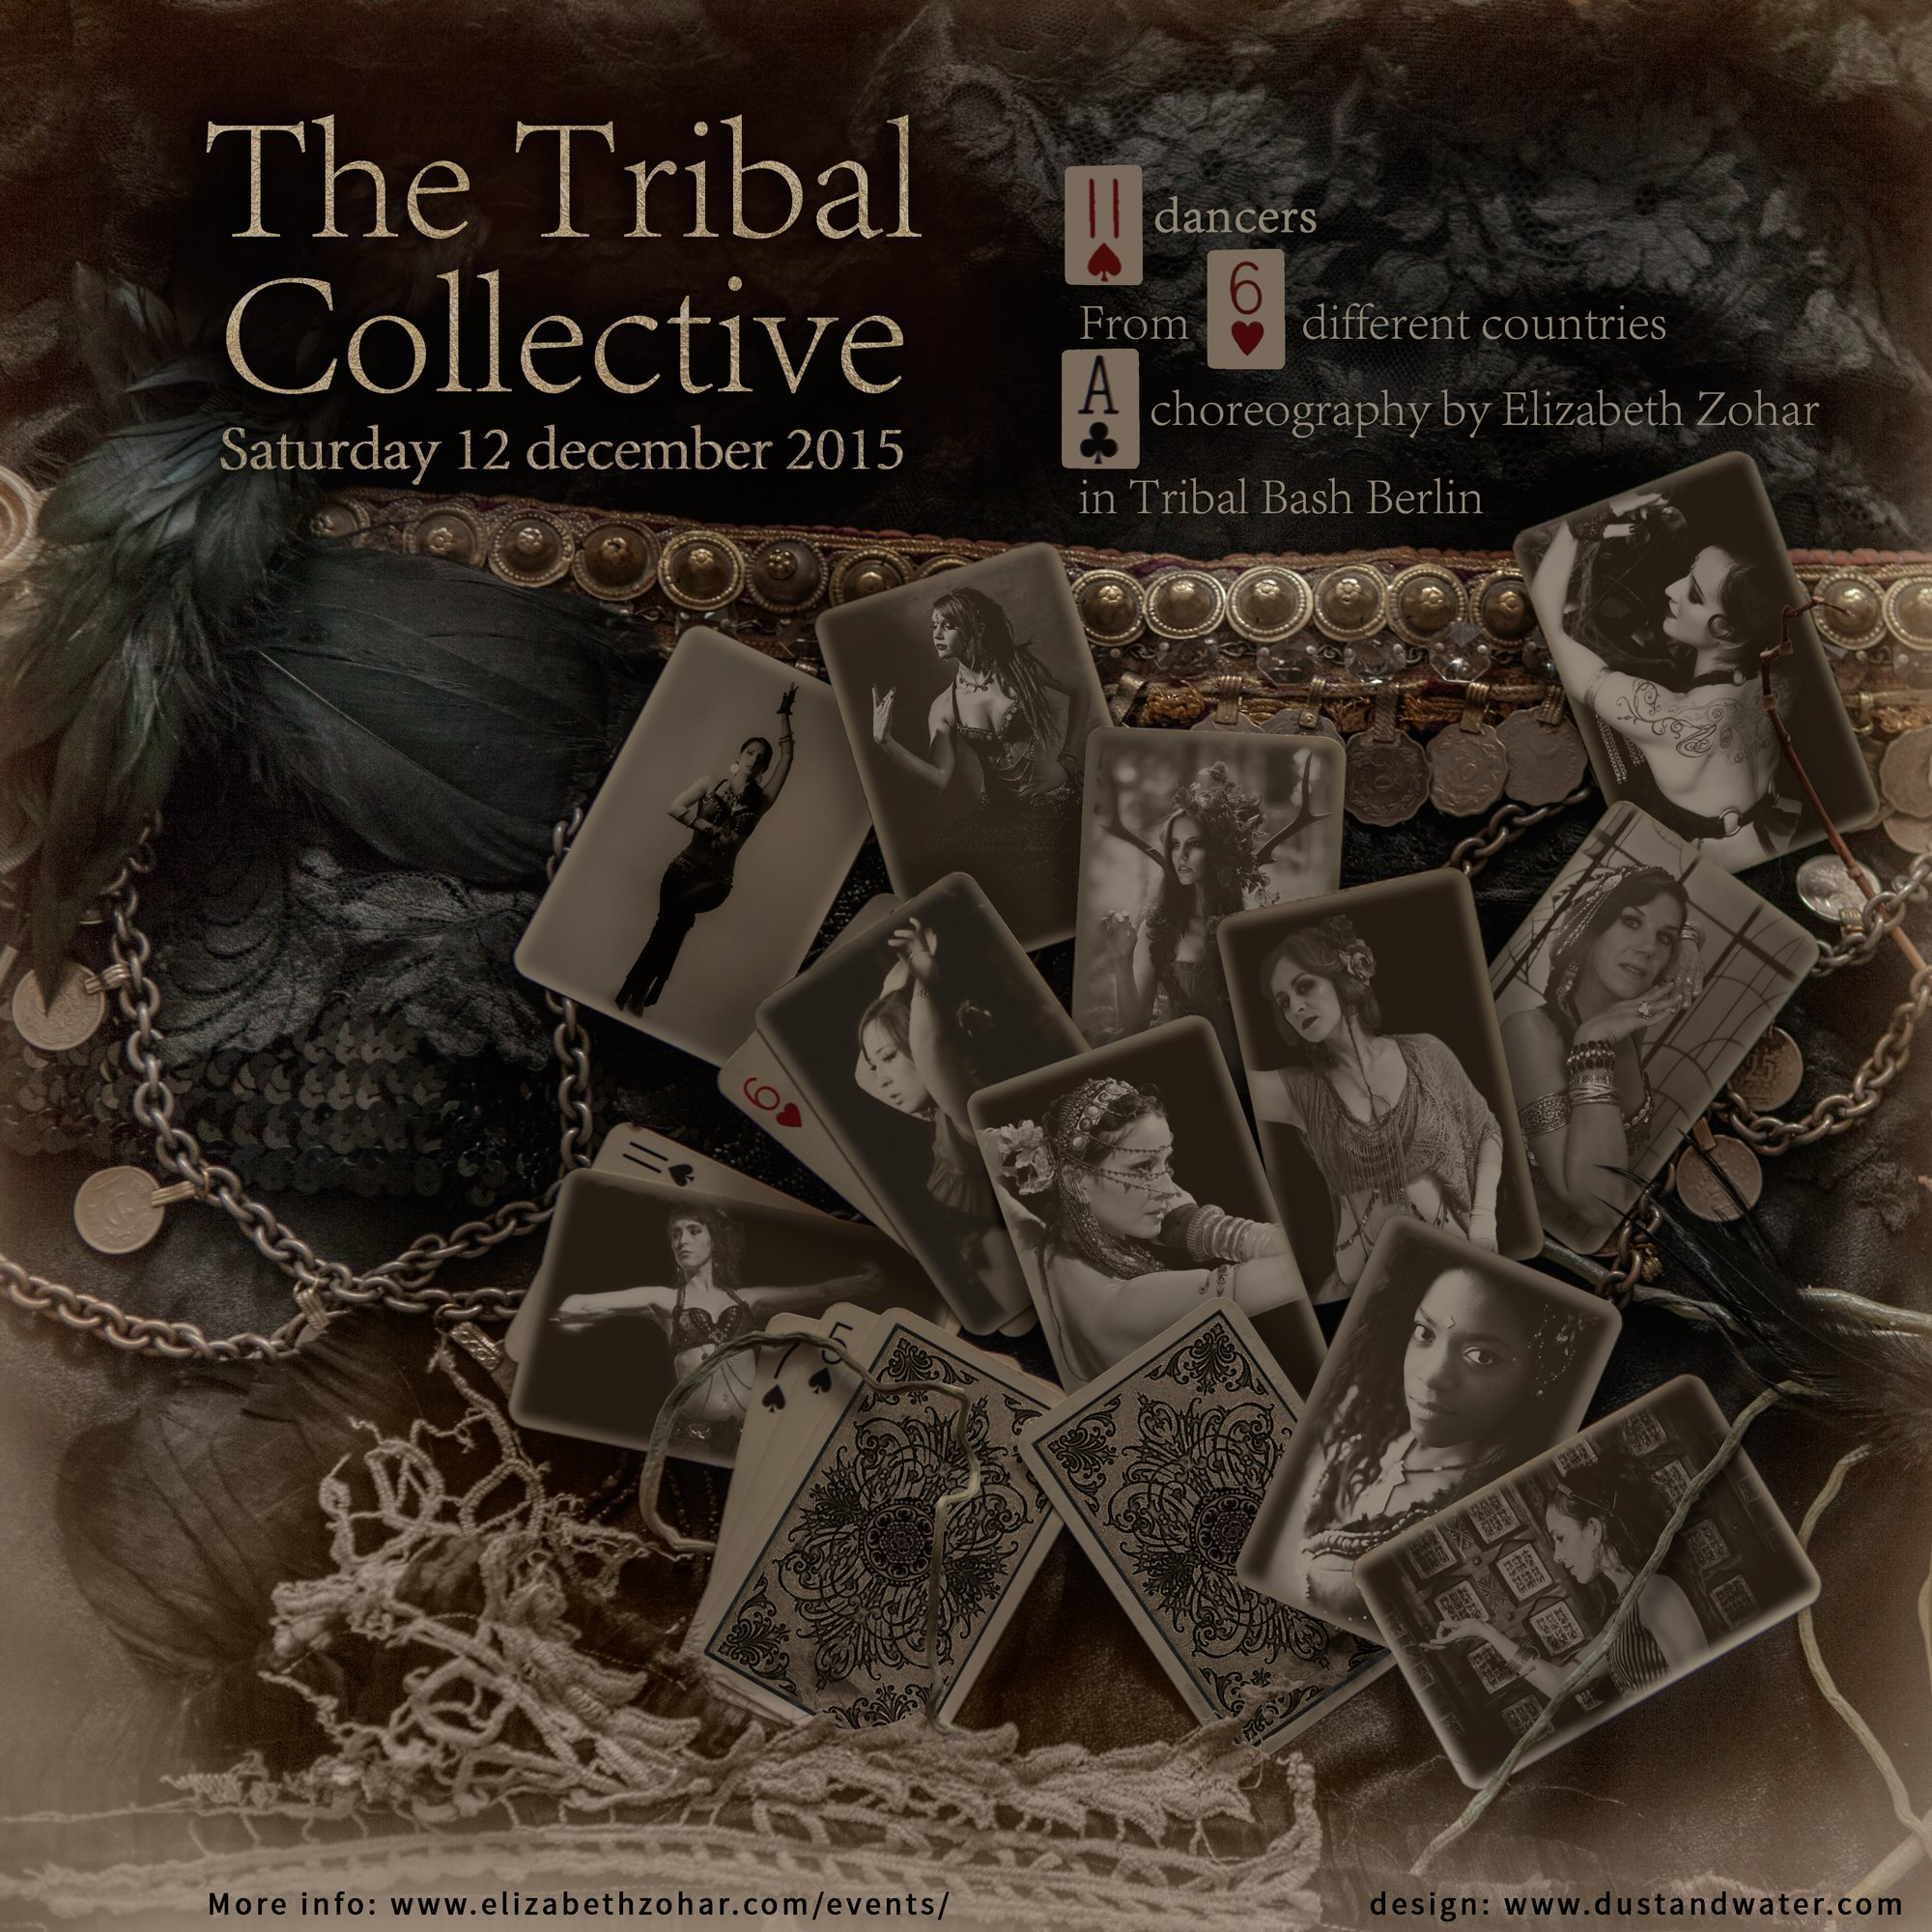 The Tribal Collective